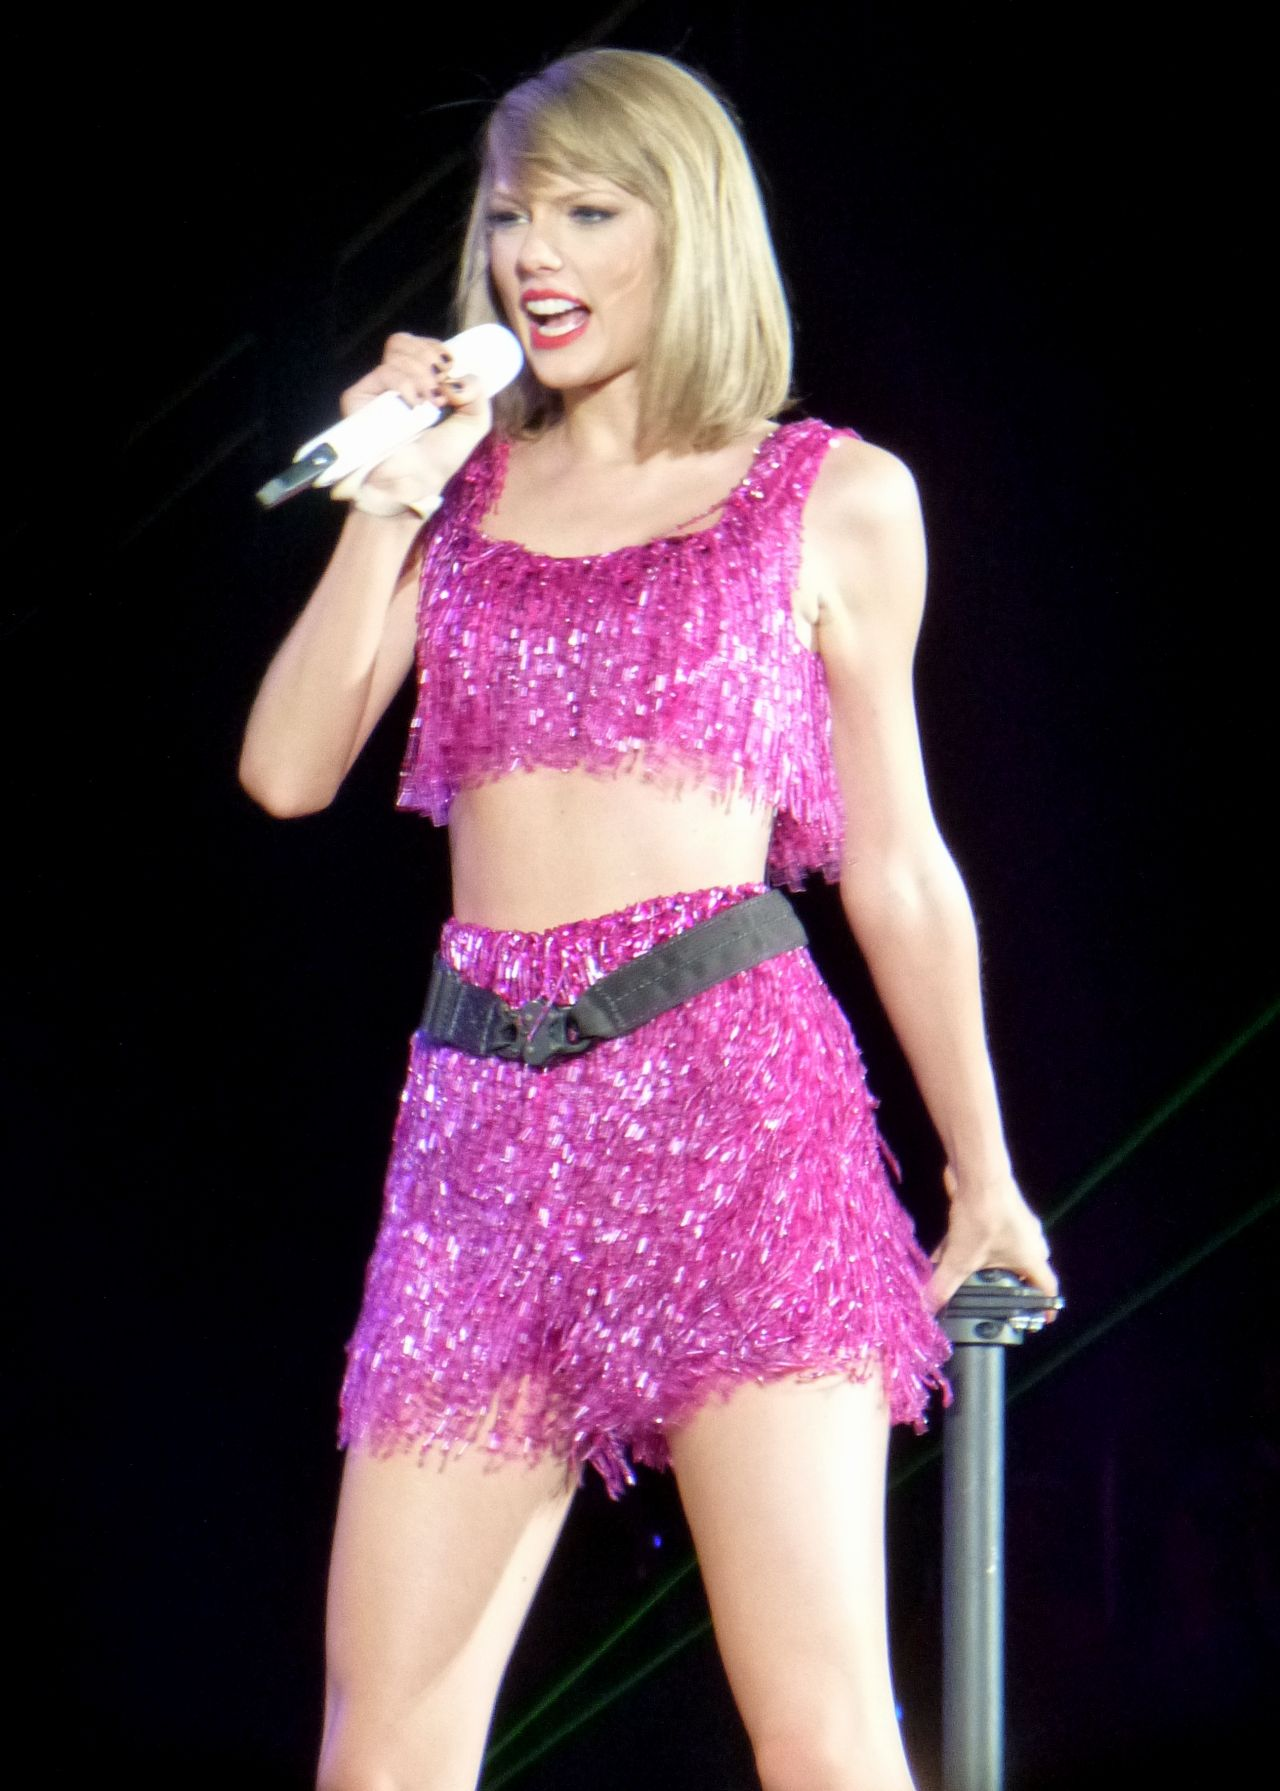 Taylor swift performs at 1989 world tour concert in detroit may